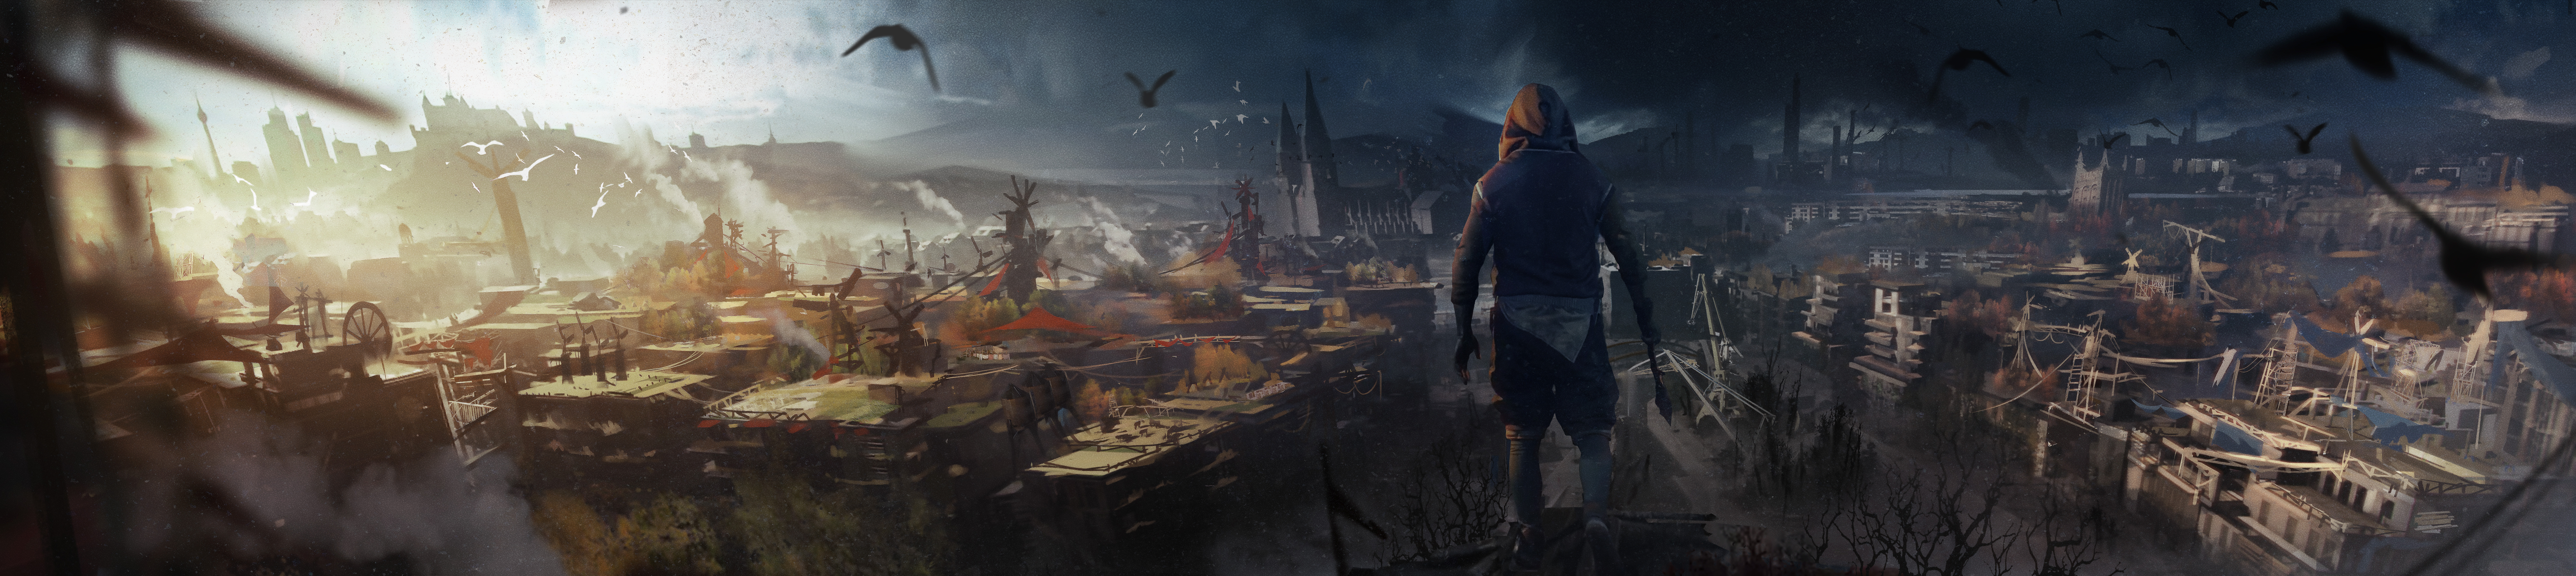 Dying Light 2 Wallpaper Posted By John Cunningham